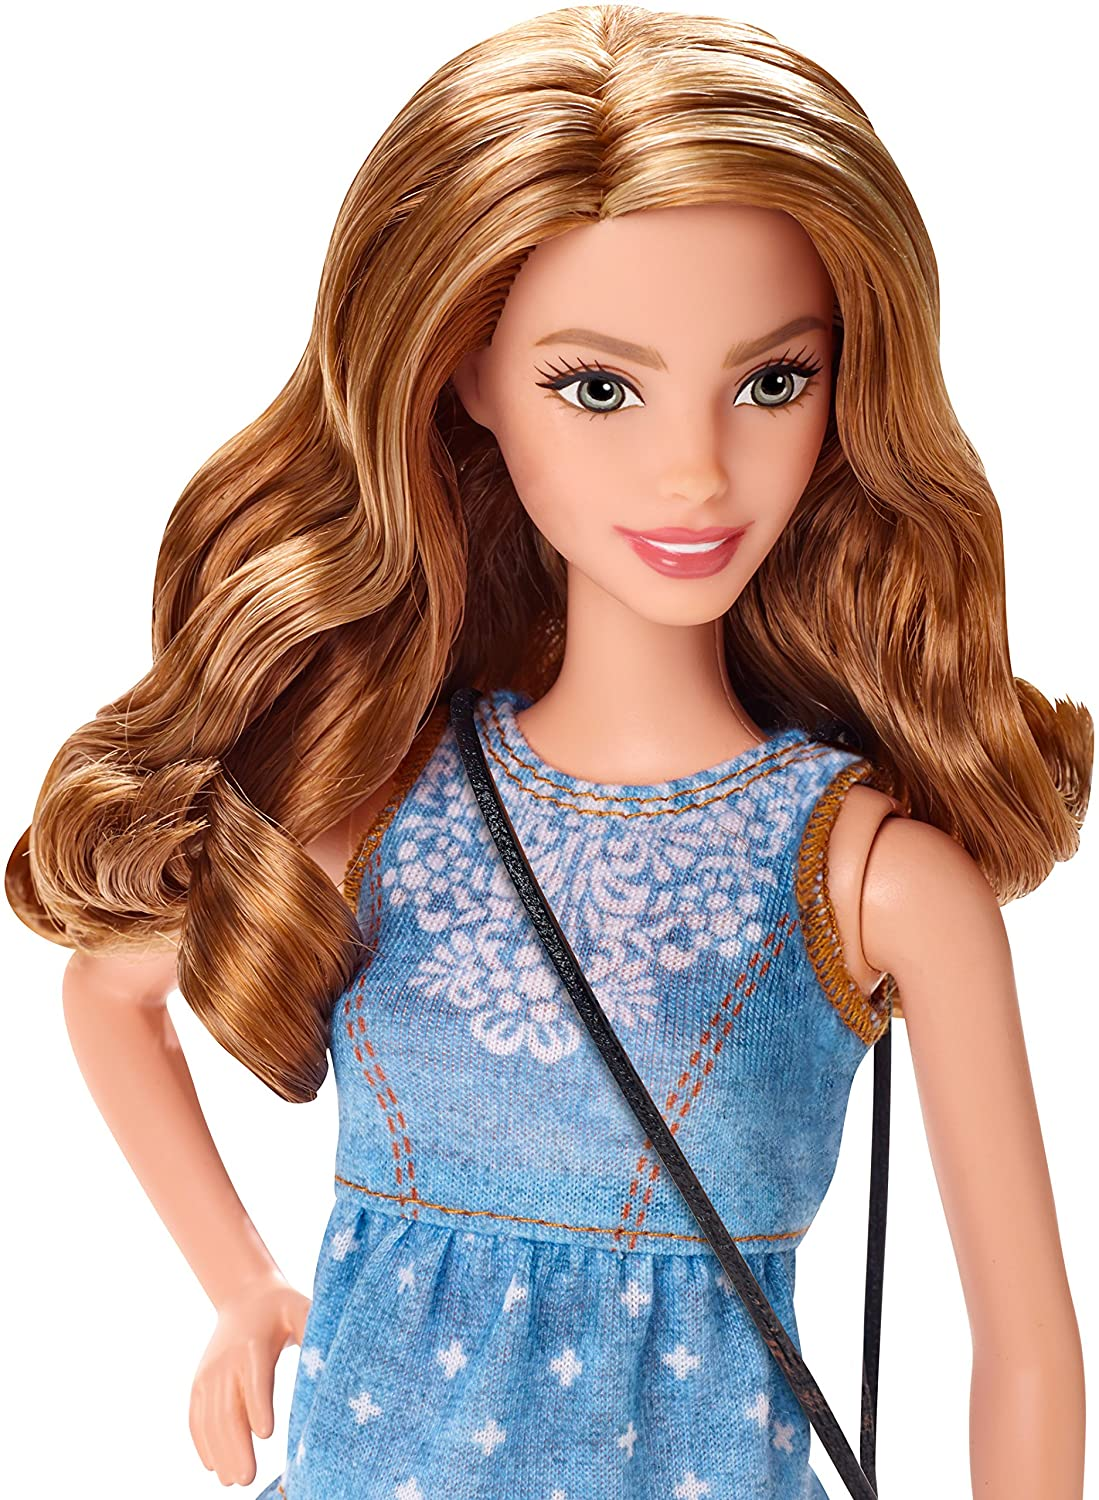 Barbie Small Styling Head MC Just Play 62572